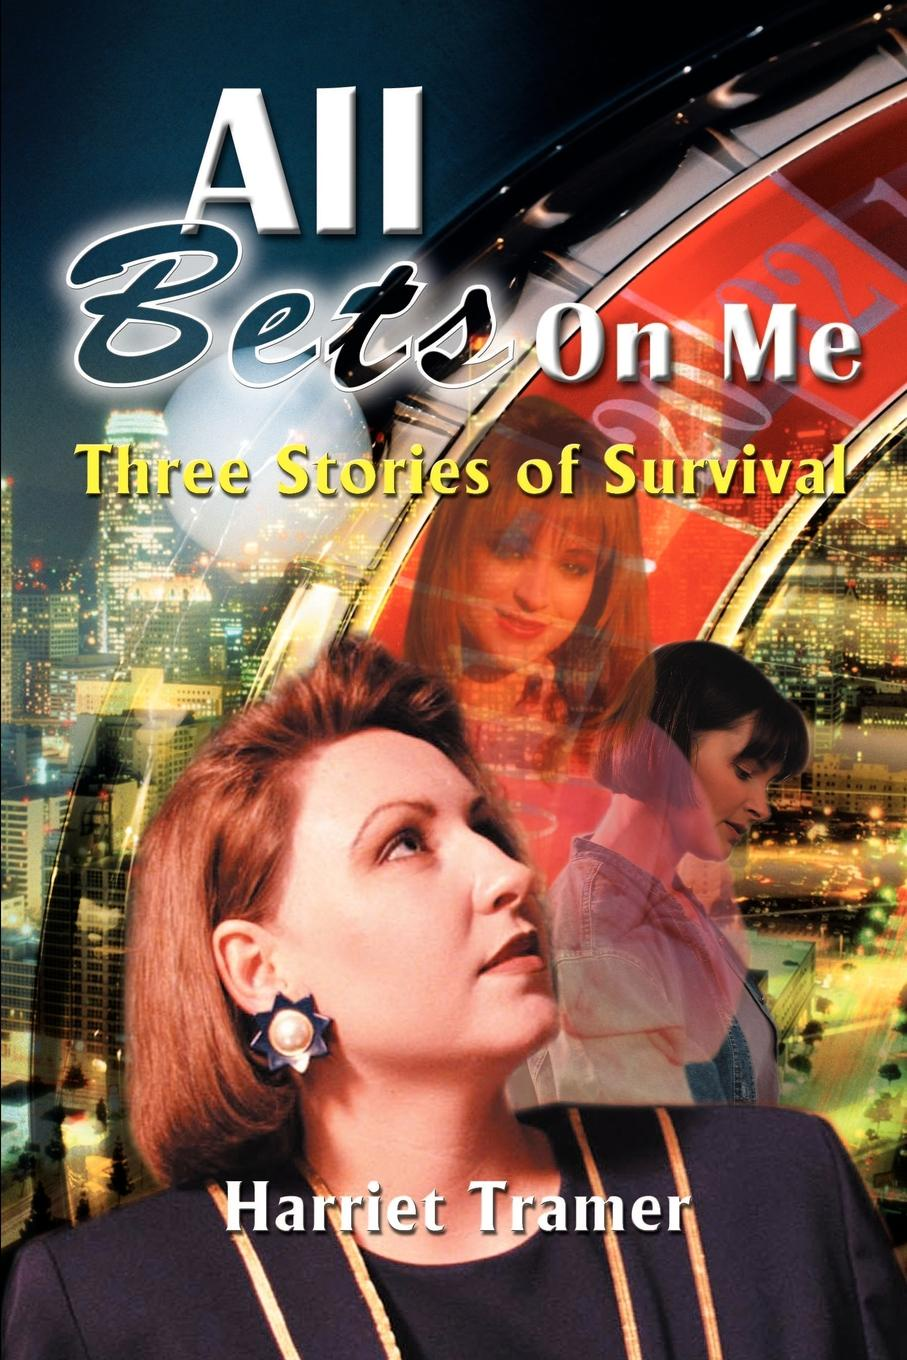 All Bets Are on Me. Three Stories of Survival. Harriet Tramer